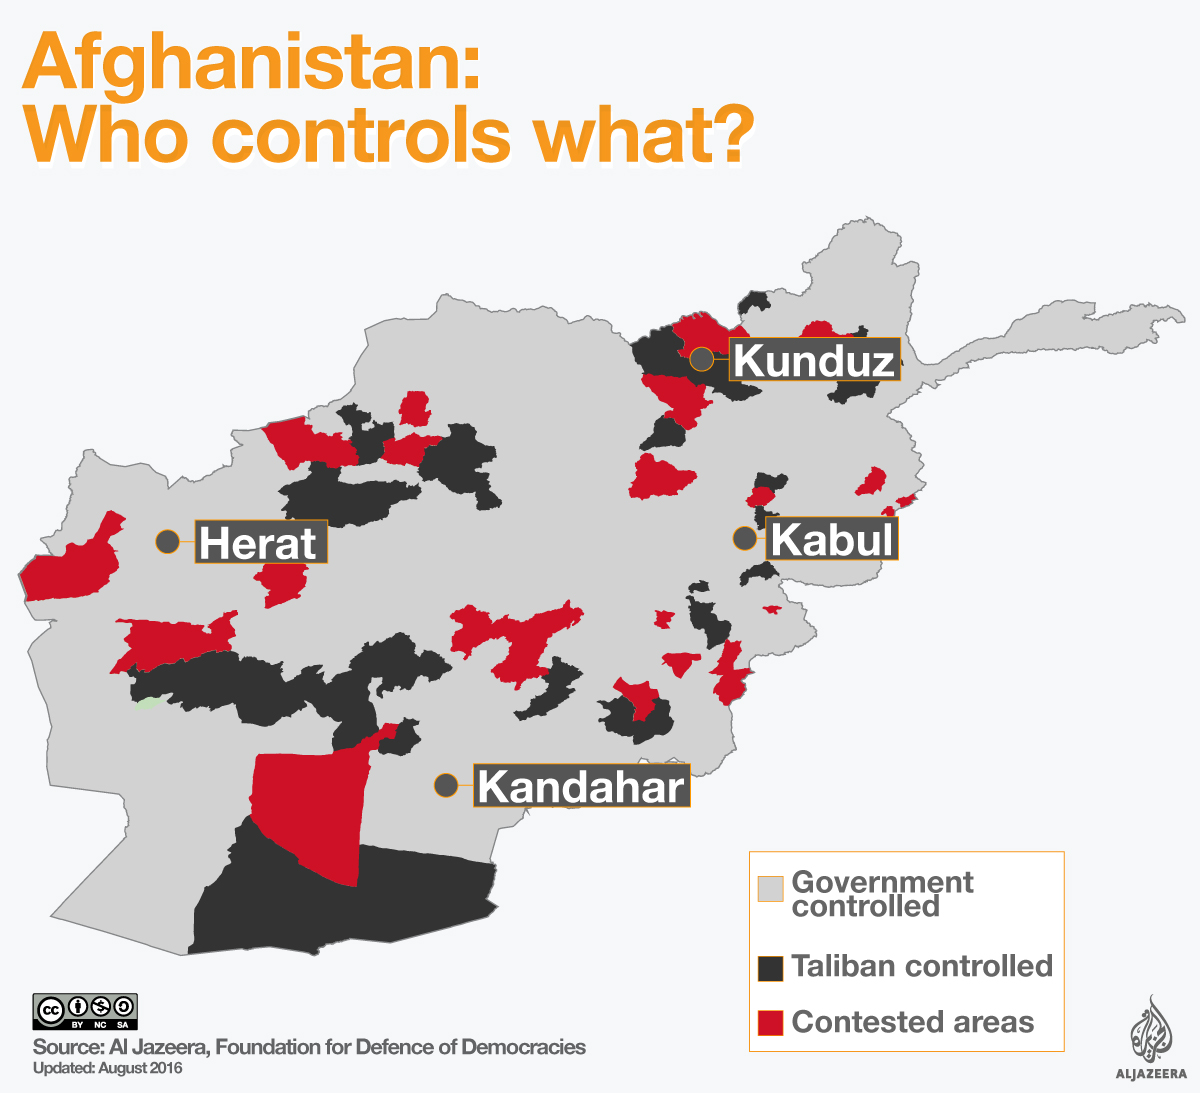 nato officially ended its combat mission in december 2014 but us forces were granted greater powers in june this year to strike at the taliban as president